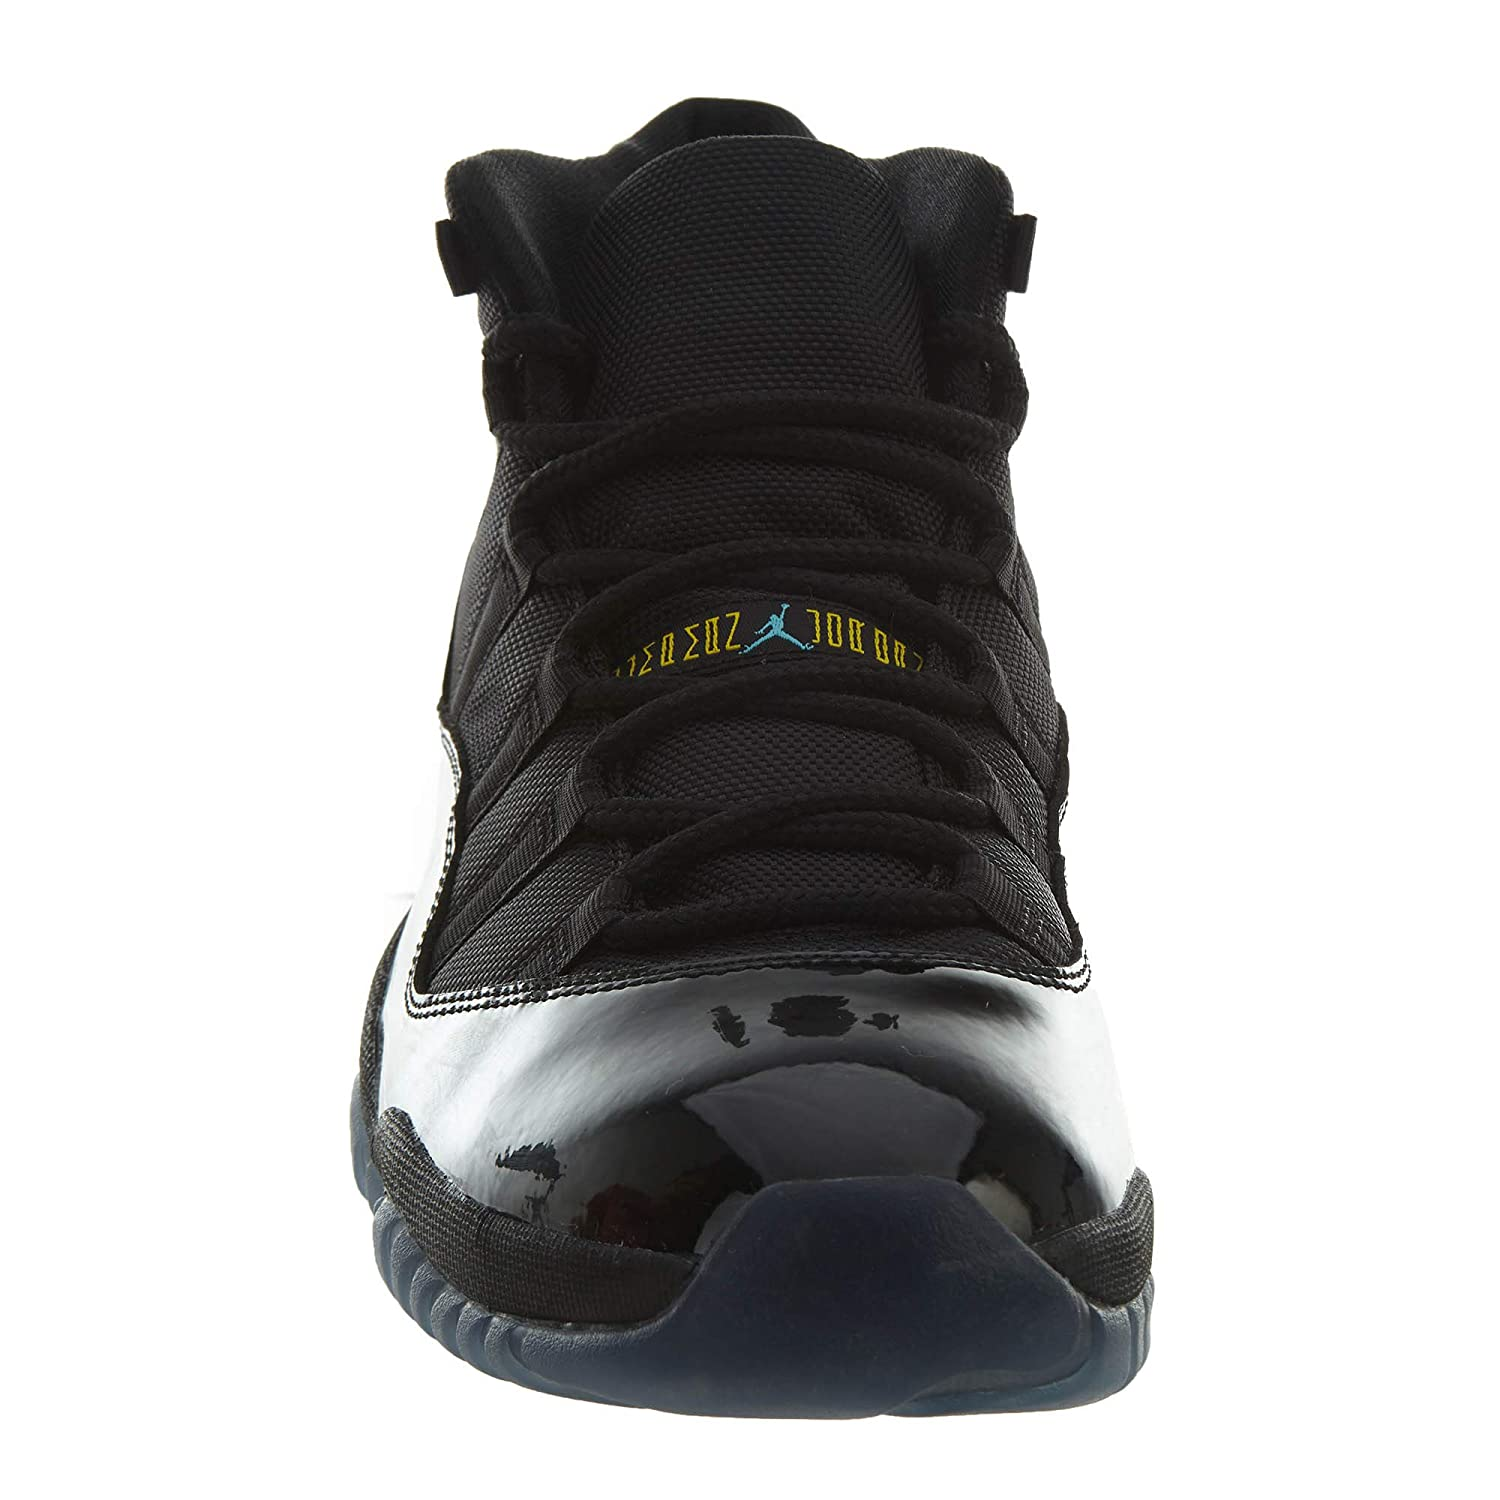 quality design 36497 938fe Amazon.com  Nike Mens Air Jordan 11 Retro Black Gamma Blue Leather  Basketball Shoes Size 11  Clothing